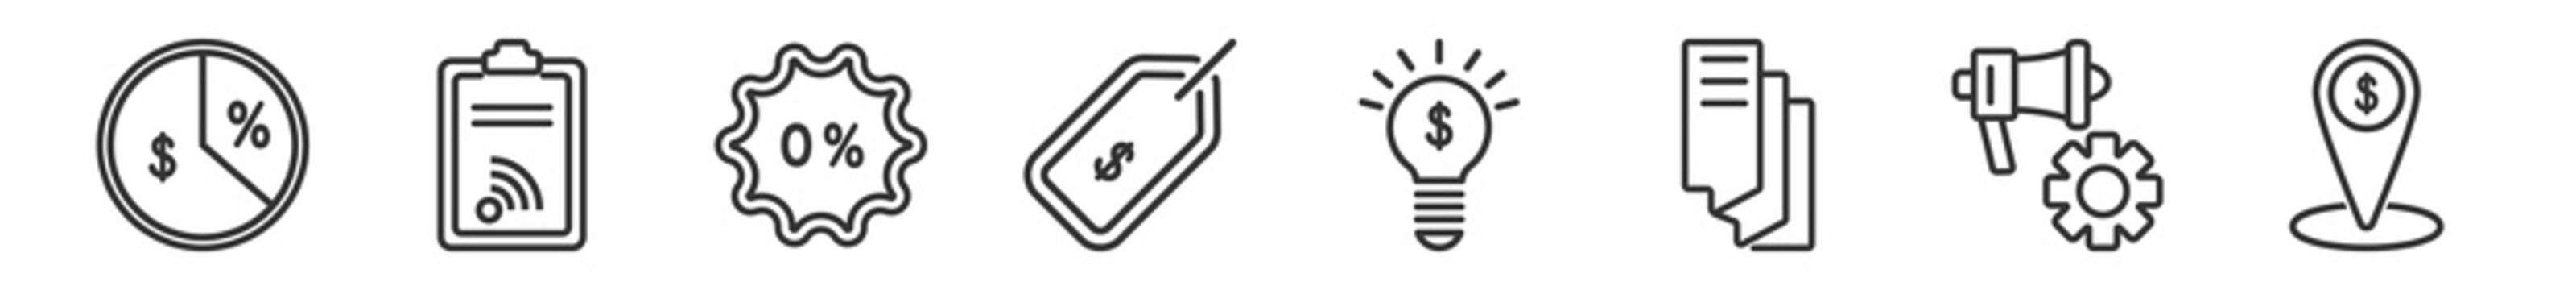 outline set of marketing line icons. linear vector icons such as margin, rss, commission, price, innovation, place. vector illustration.